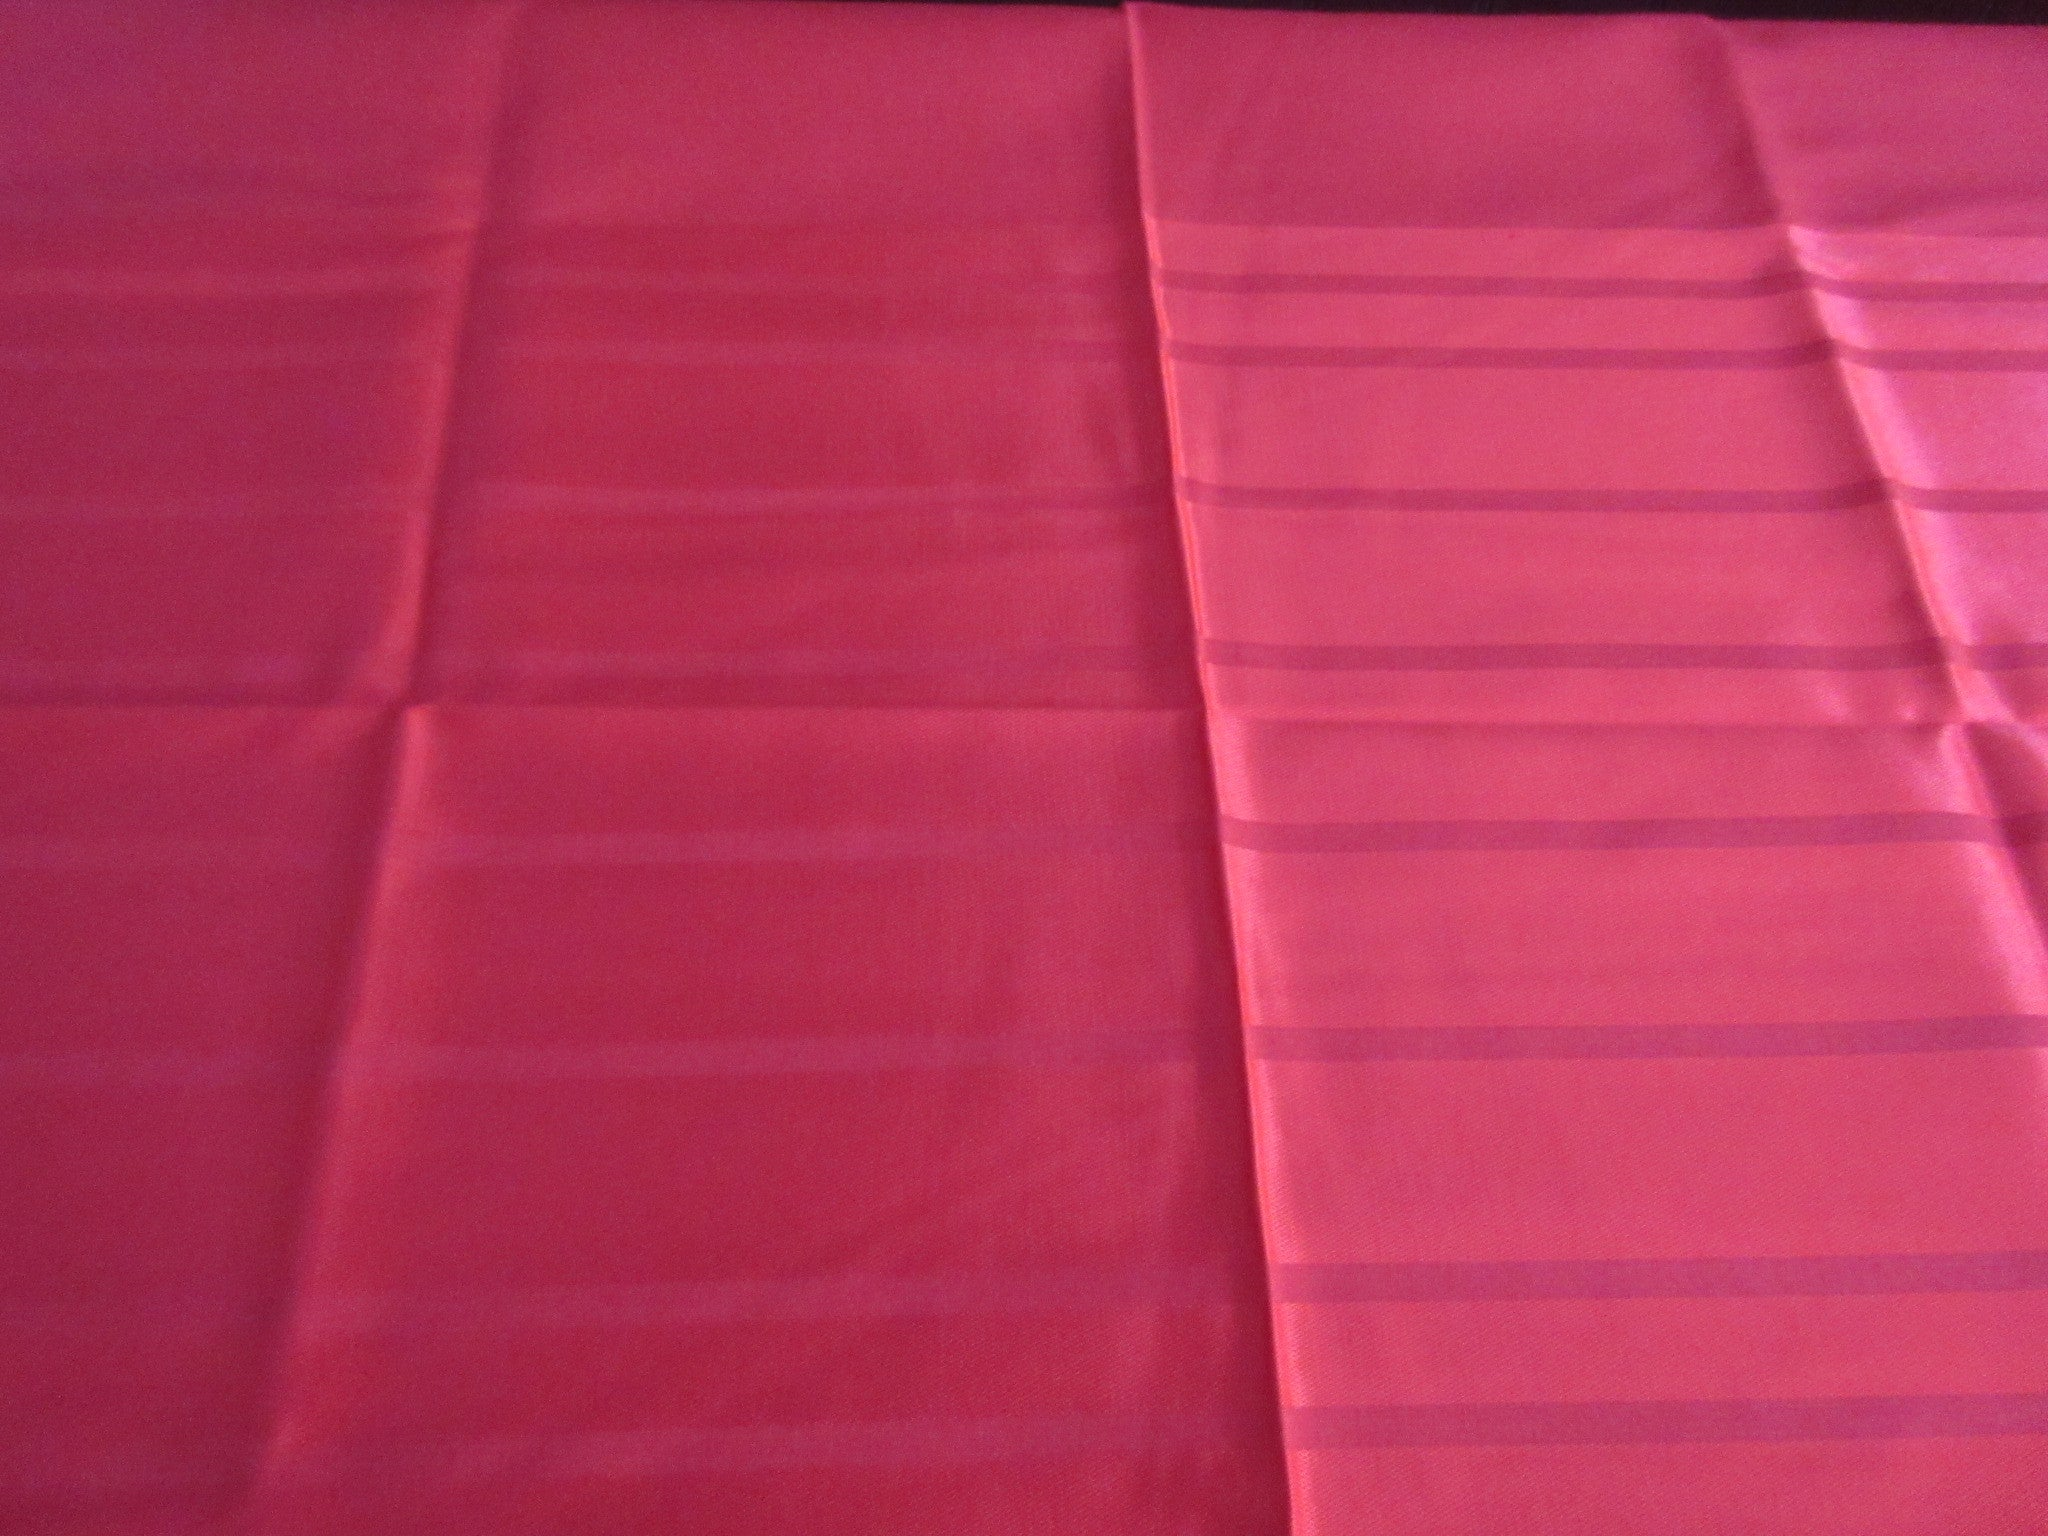 OVAL Red Striped Leacock MWOT Holiday Novelty Vintage Printed Tablecloth (82 X 59)